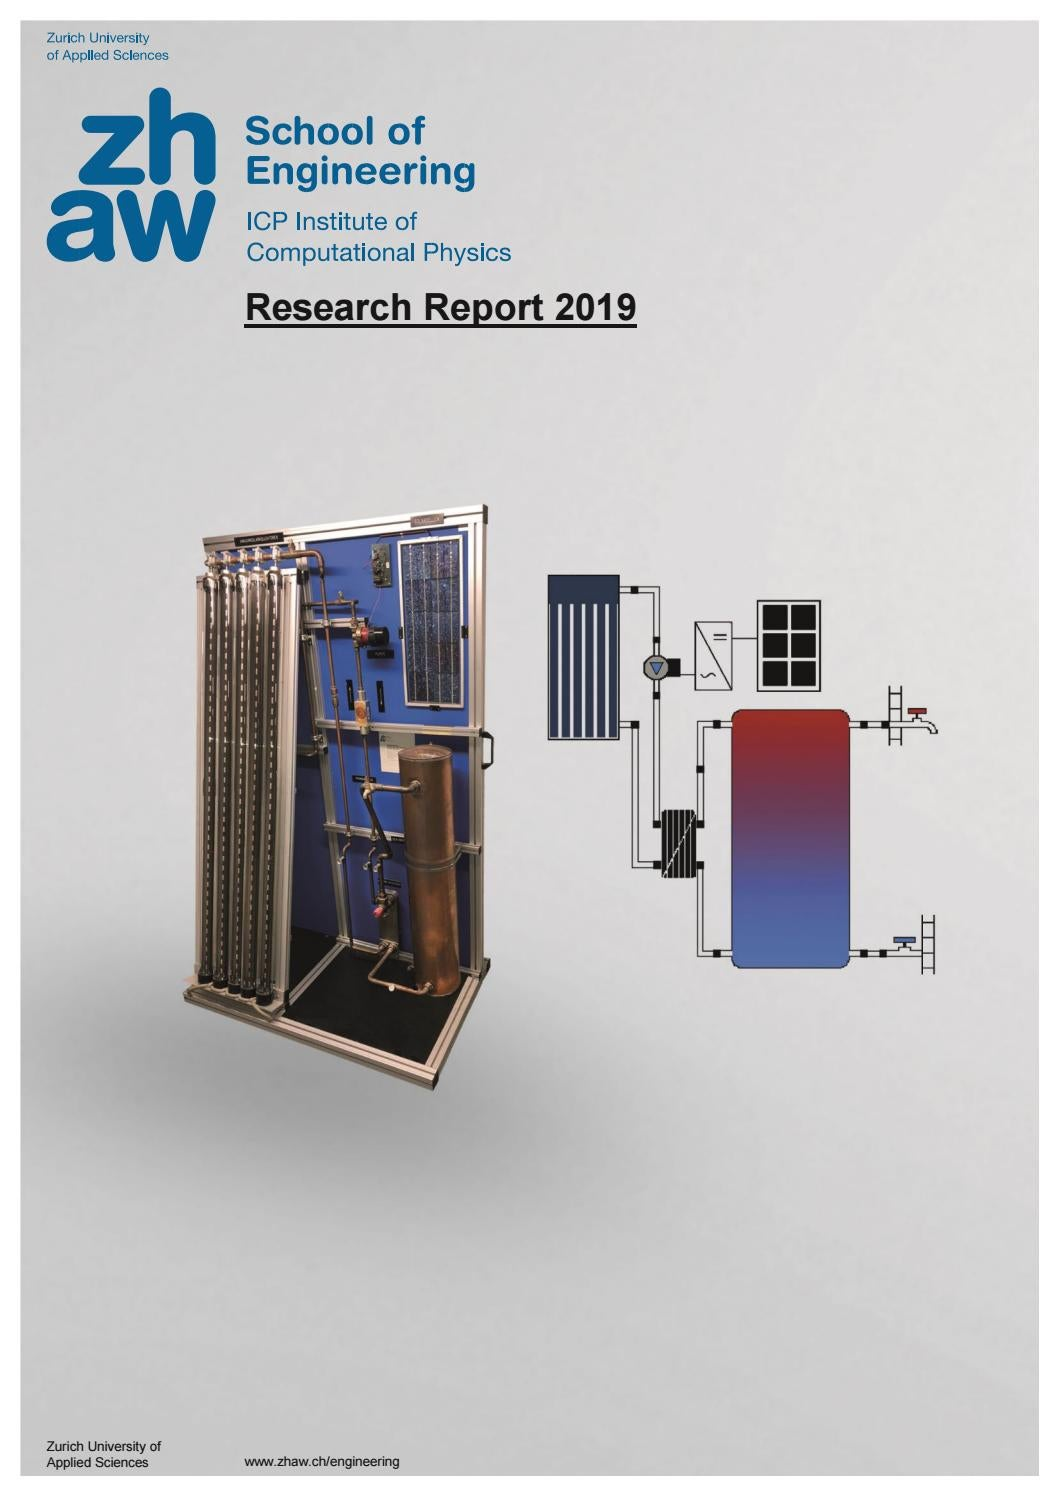 Icp Research Report 2019 English By Zhaw School Of Engineering Issuu